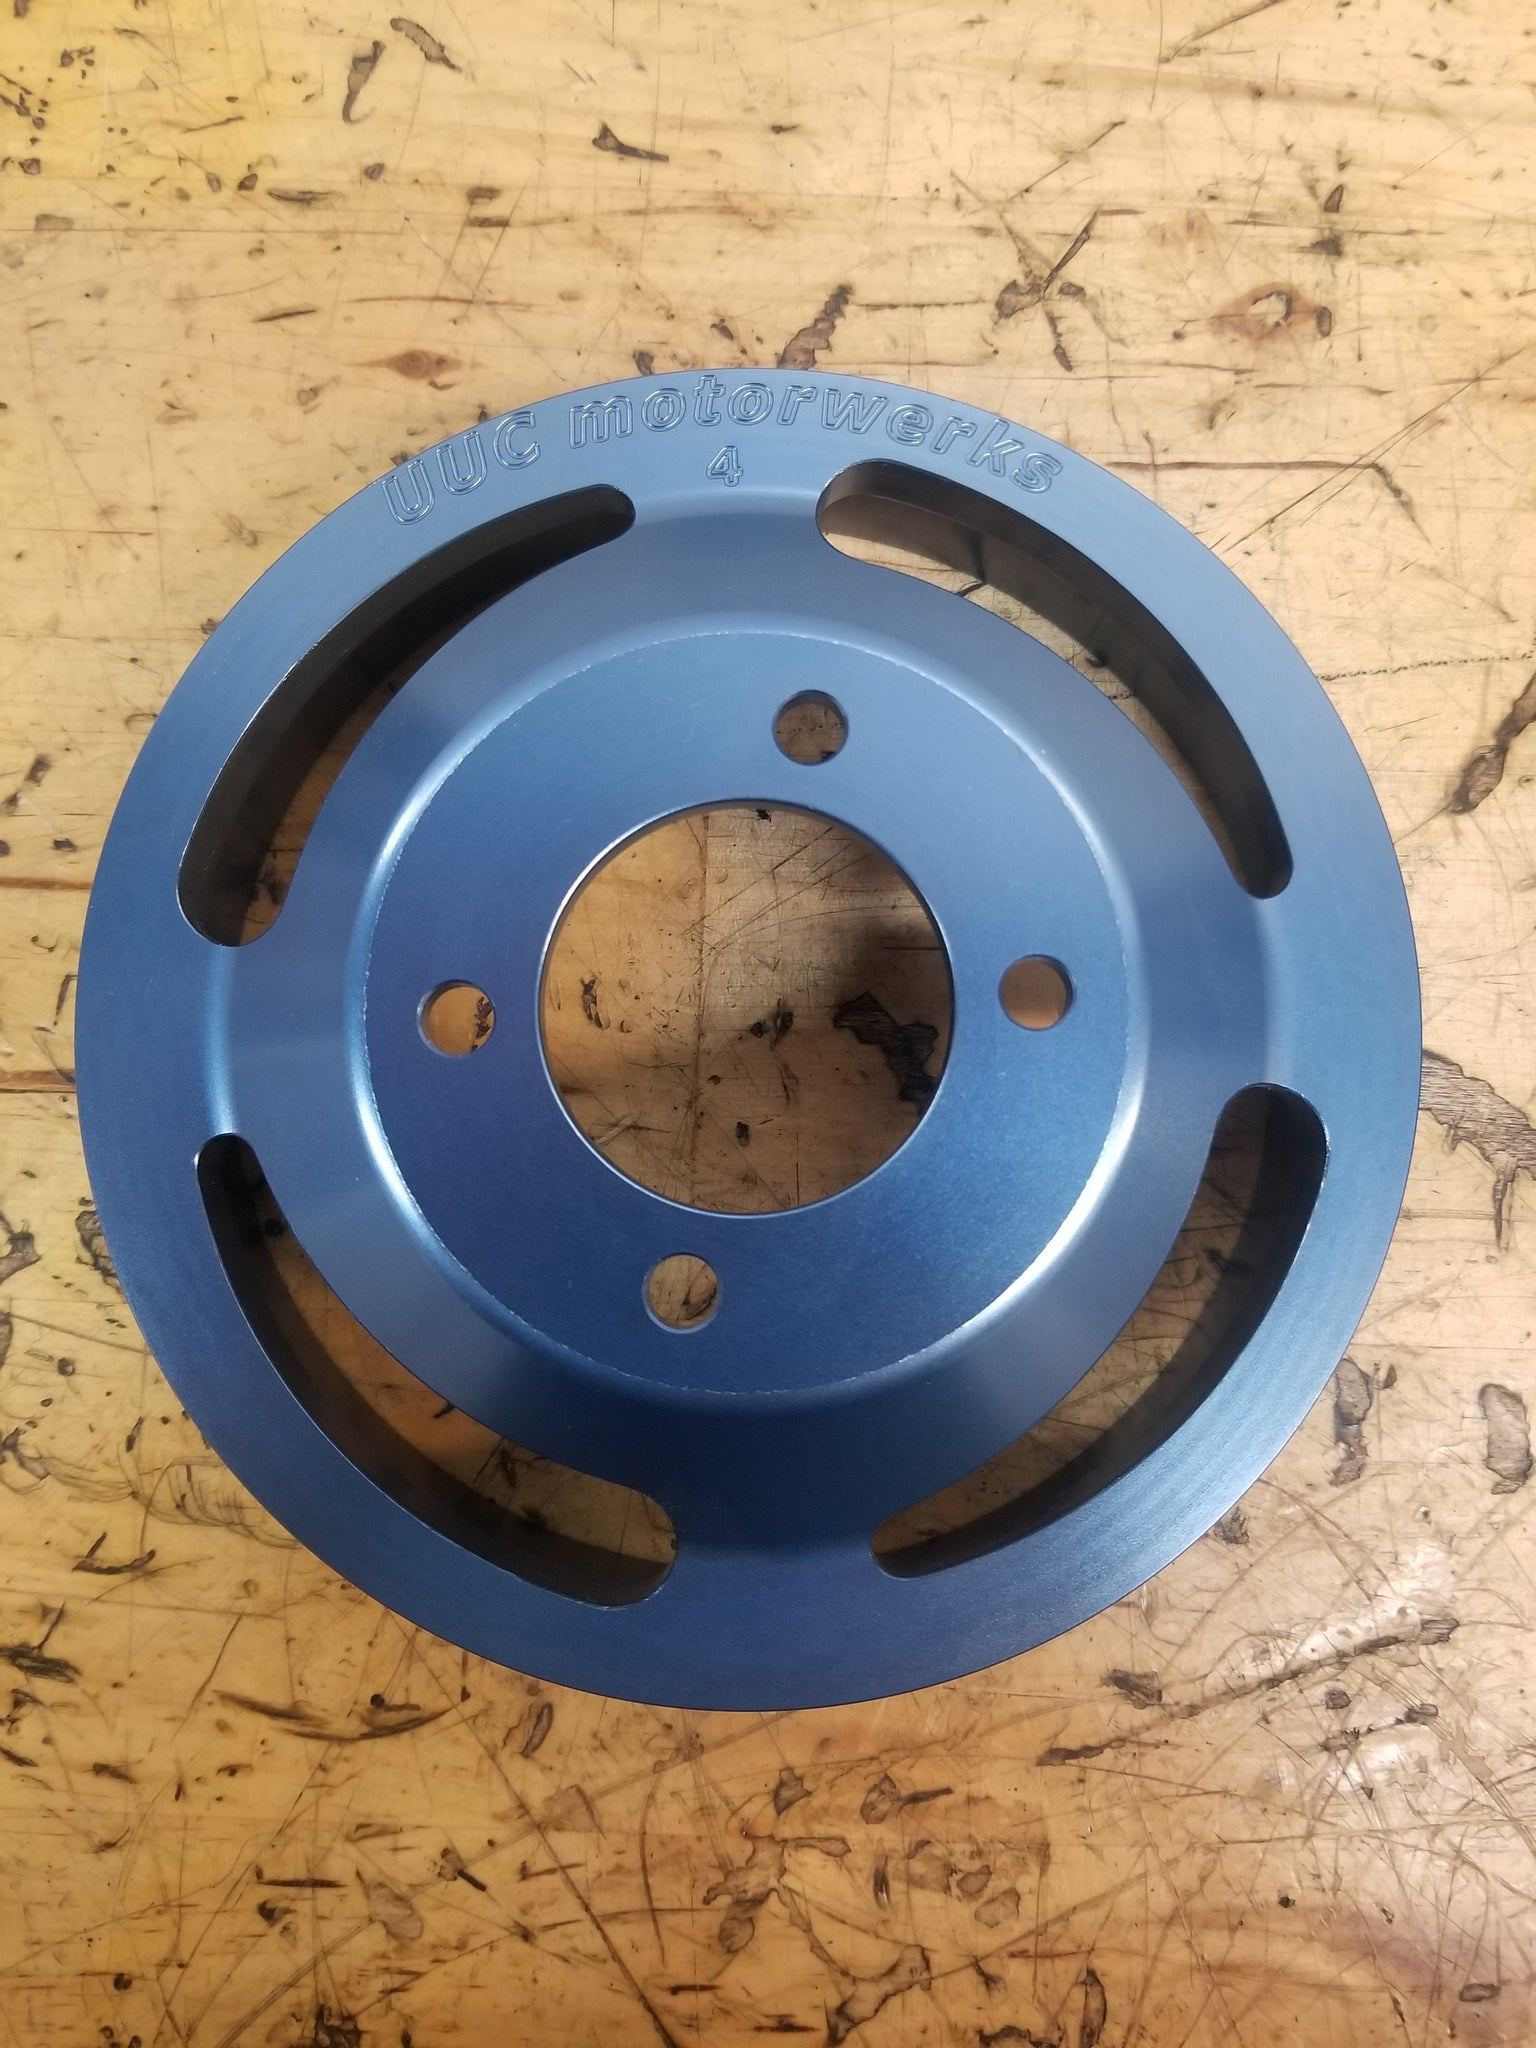 UDPS54 Underdrive Pulley Set - E46 M3 '01-'06 and '01 MZ3